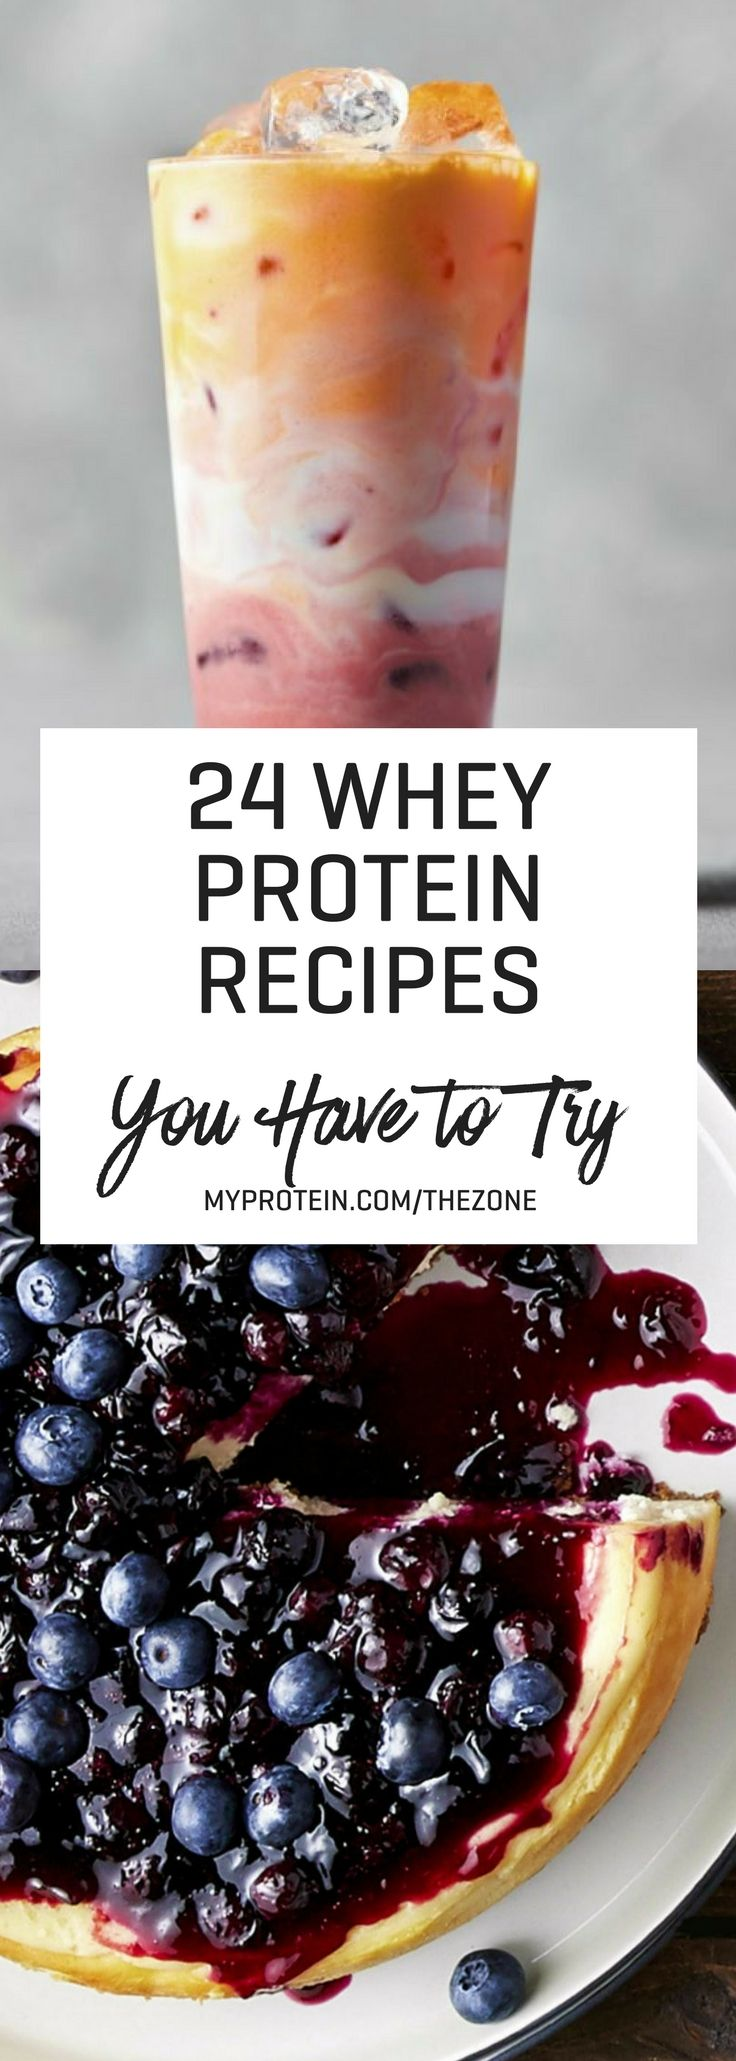 24 Delicious Whey Protein Recipes Absolutely Worth Trying #wheyproteinrecipes